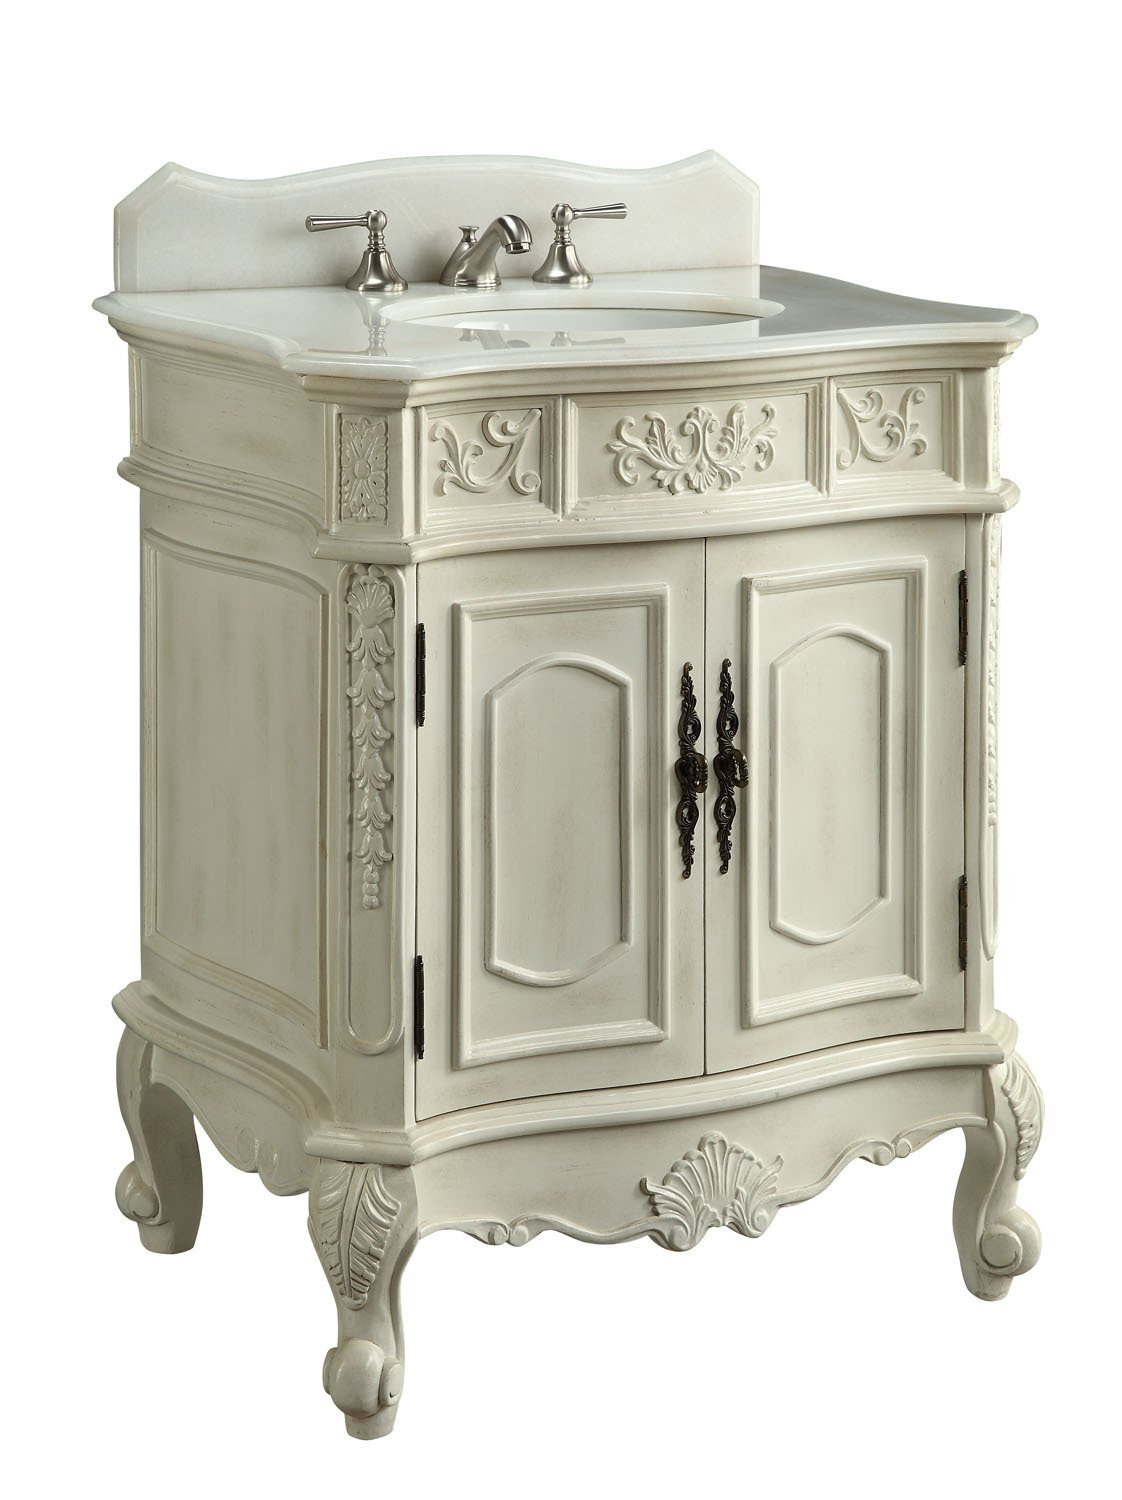 Antique White Bathroom Cabinets adelina 30 inch antique white single sink bathroom vanity, antique